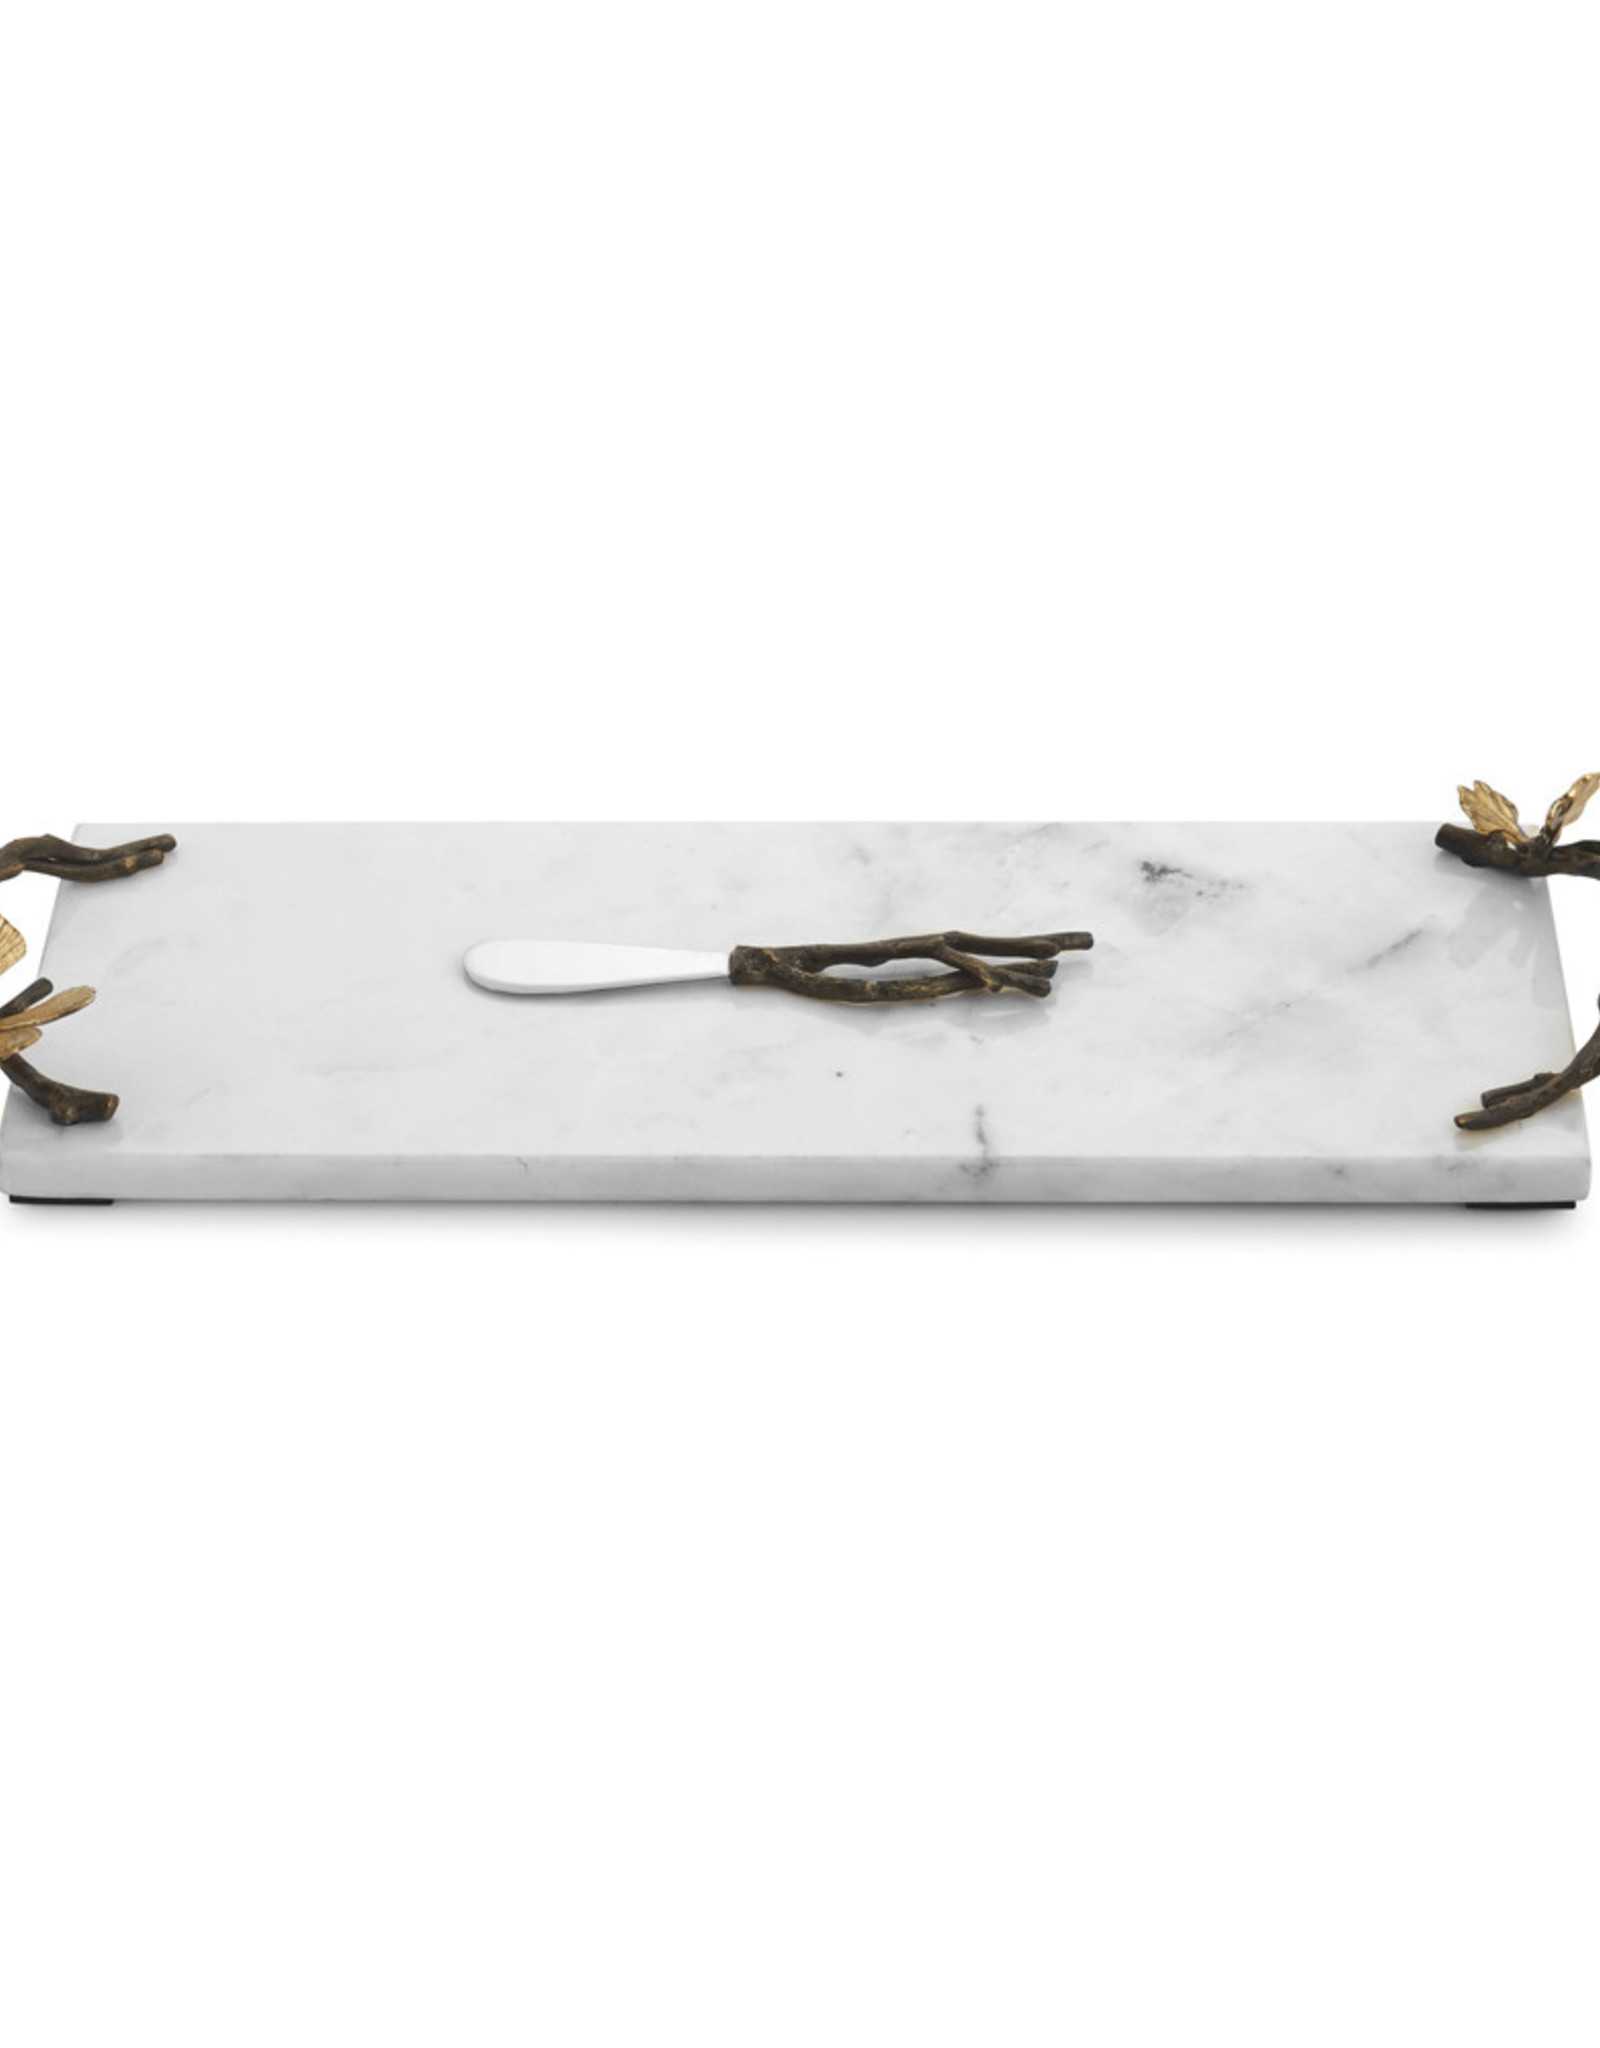 Michael Aram Butterfly Ginkgo Small Cheese Board